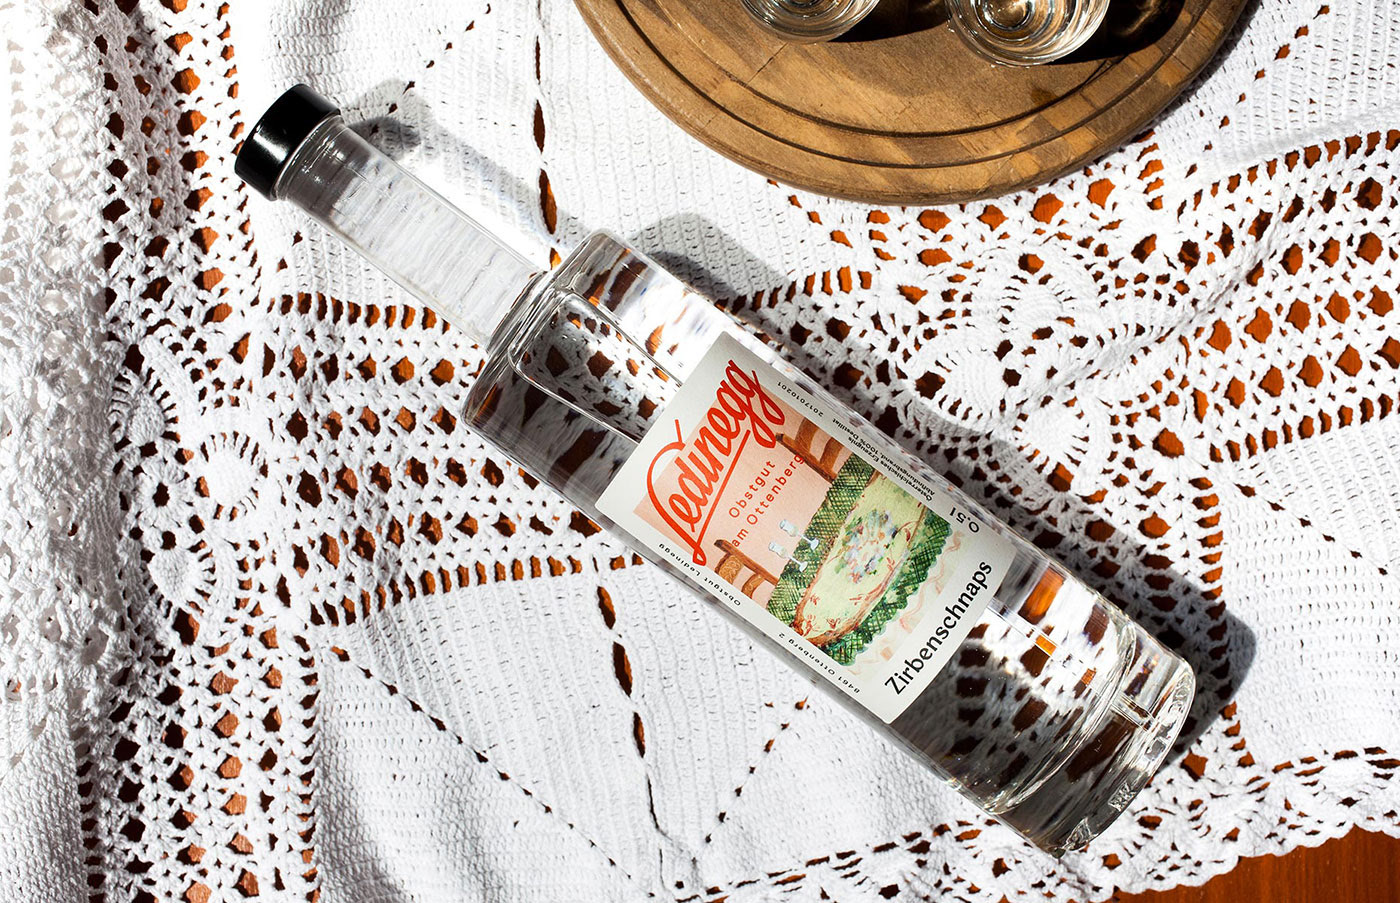 10 Luxurious Spirit Bottle Packaging Designs That'll Knock Your Socks Off